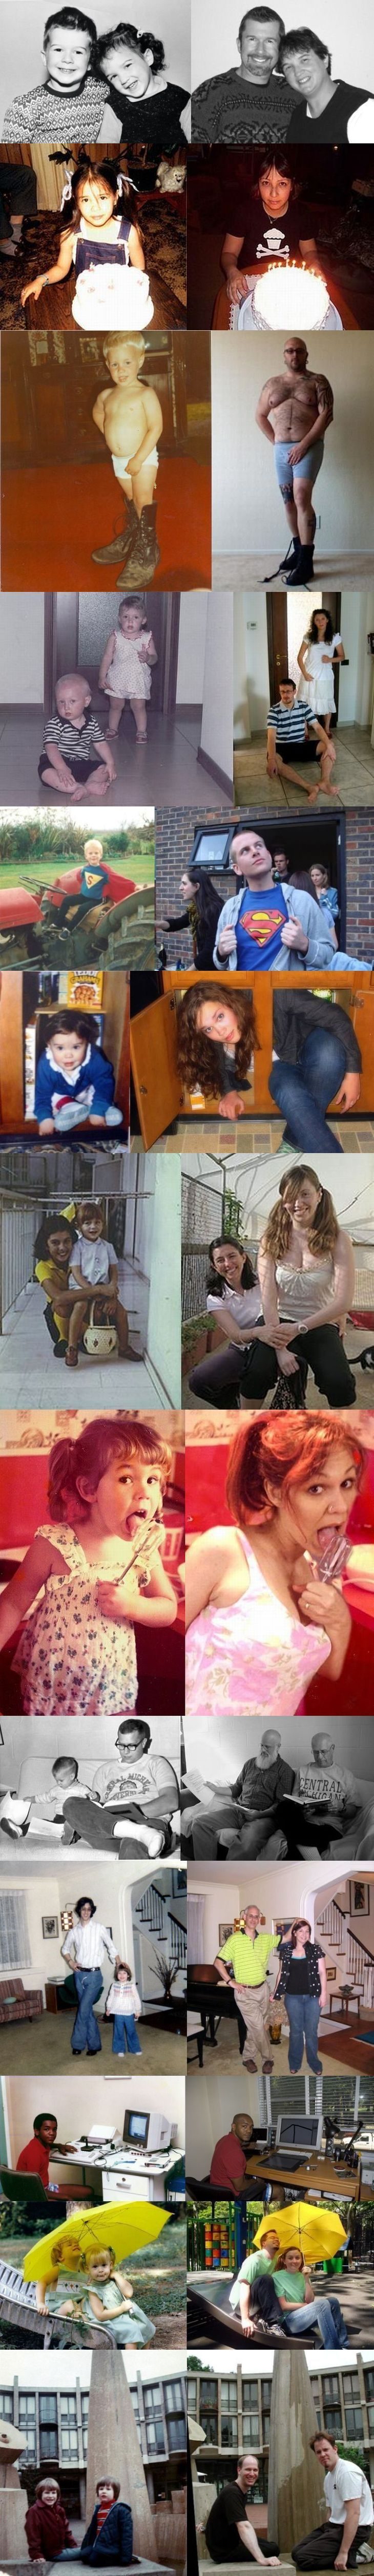 Recreating childhood photos! this would make a really neat gift for parents or grandparents.... a collage of them..........Love this idea!!!!